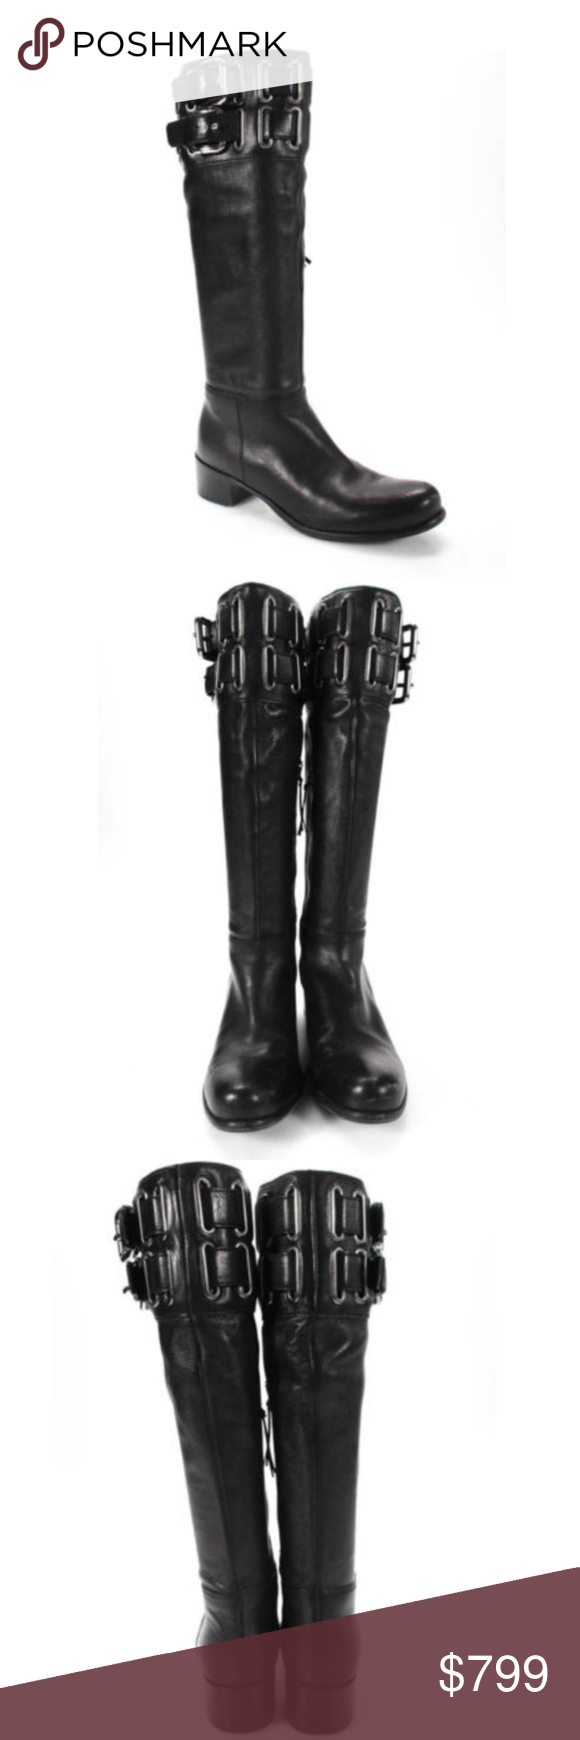 82345e6adf15 Authentic Miu Miu Knee-high boots with Buckle 6.5 MIU MIU BLACK SILVER TONE  BUCKLE ACCENTS ZIPPER CLOSURE KNEE HIGH BOOTS SIZE 6.5 These are in great  ...